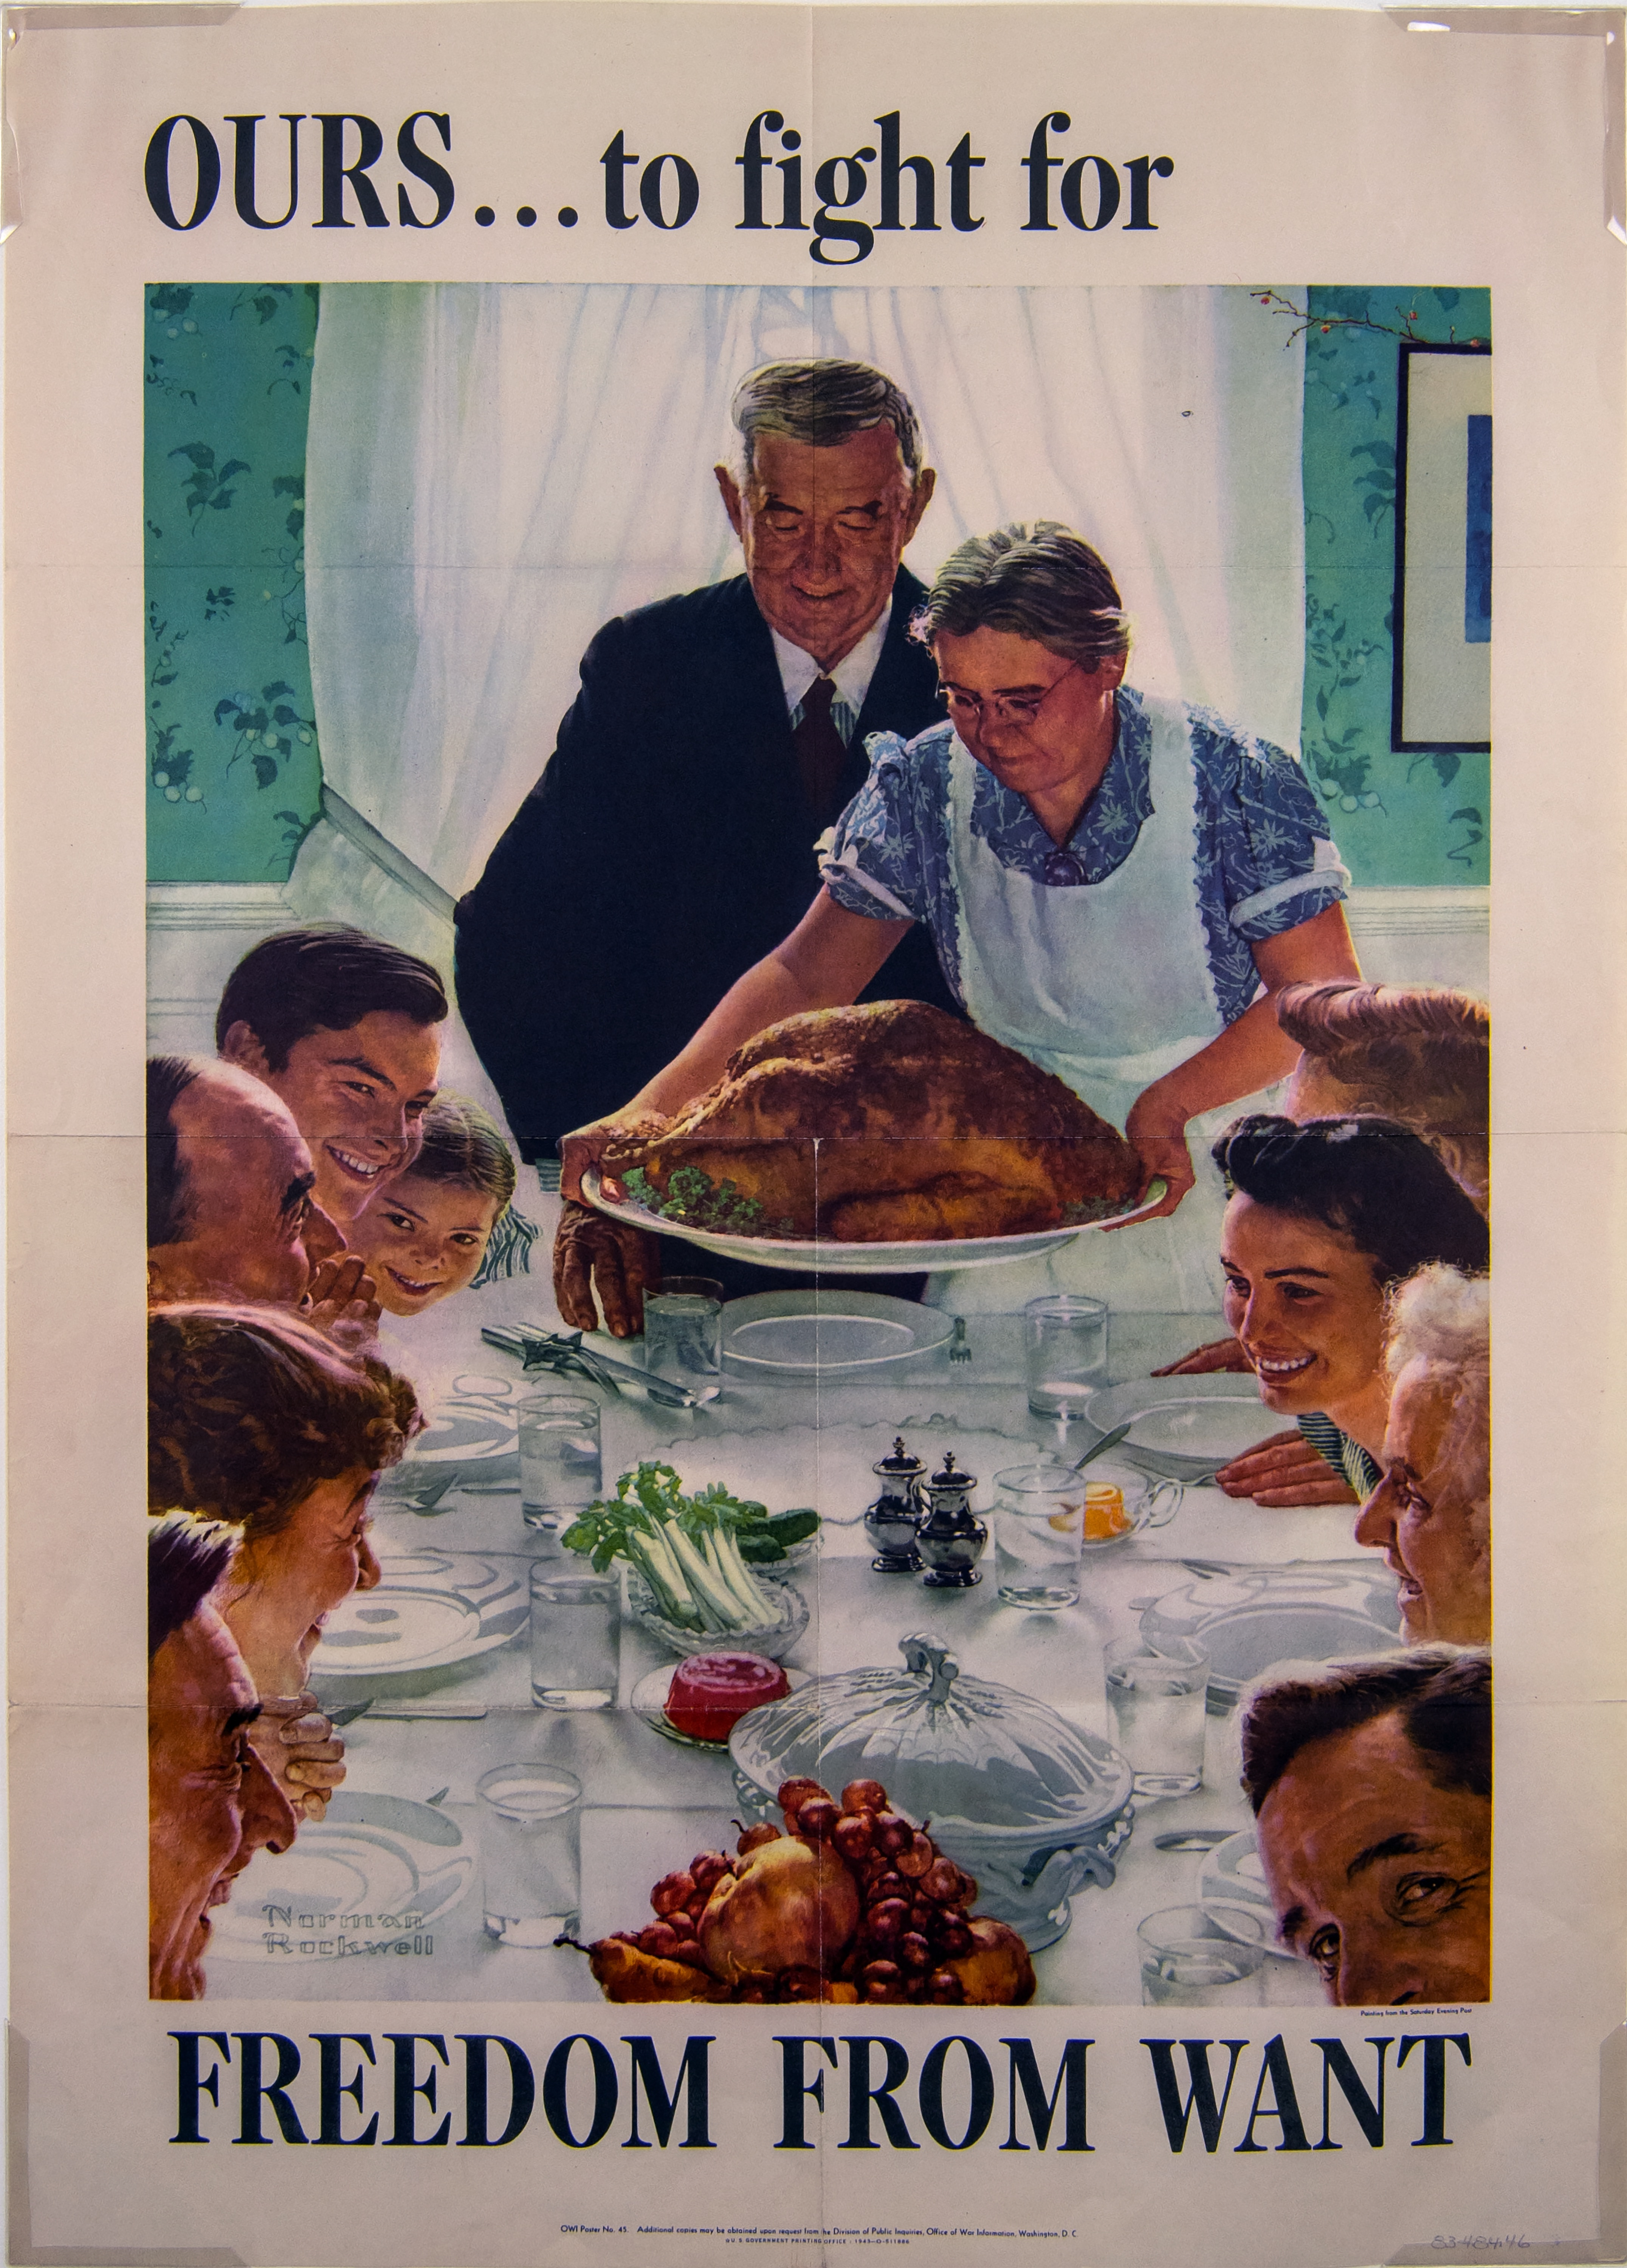 Image of a poster by Norman Rockwell. In the image, Rockwell depicts freedom from want with a holiday table, set with white linens and china. An older man stands at the head of the table while an older woman wearing an apron arrives with a large roasted turkey on a china platter. Around the table, multi-generational people are seated, smiling and looking forward to the meal together.